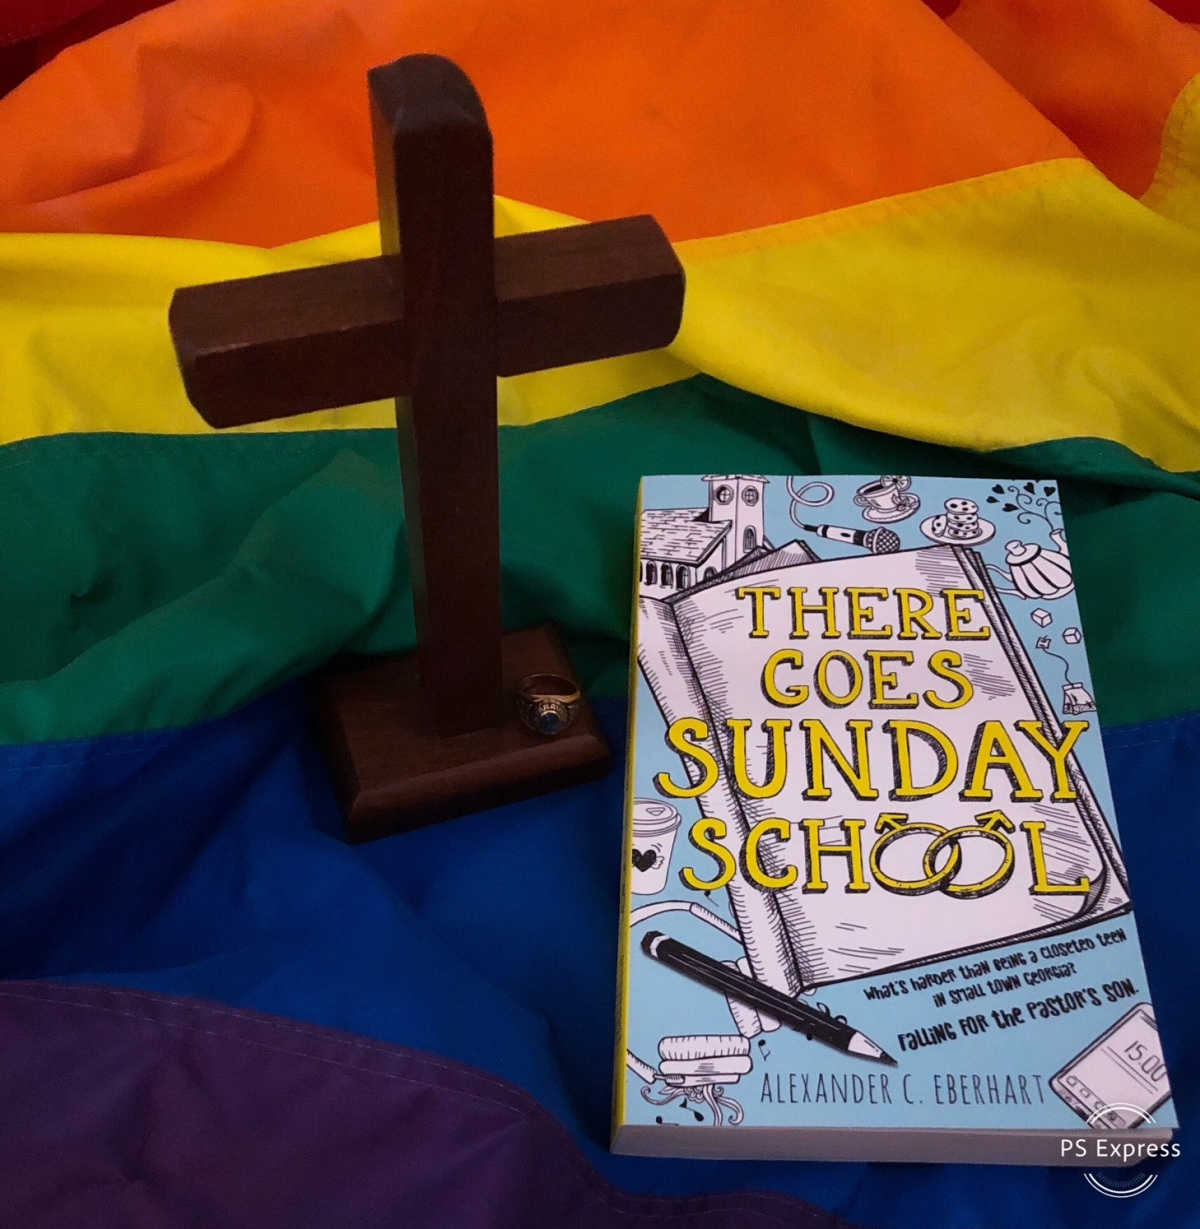 The Nitty Gritty: A Review of There Goes Sunday School (Alexander C. Eberhart)